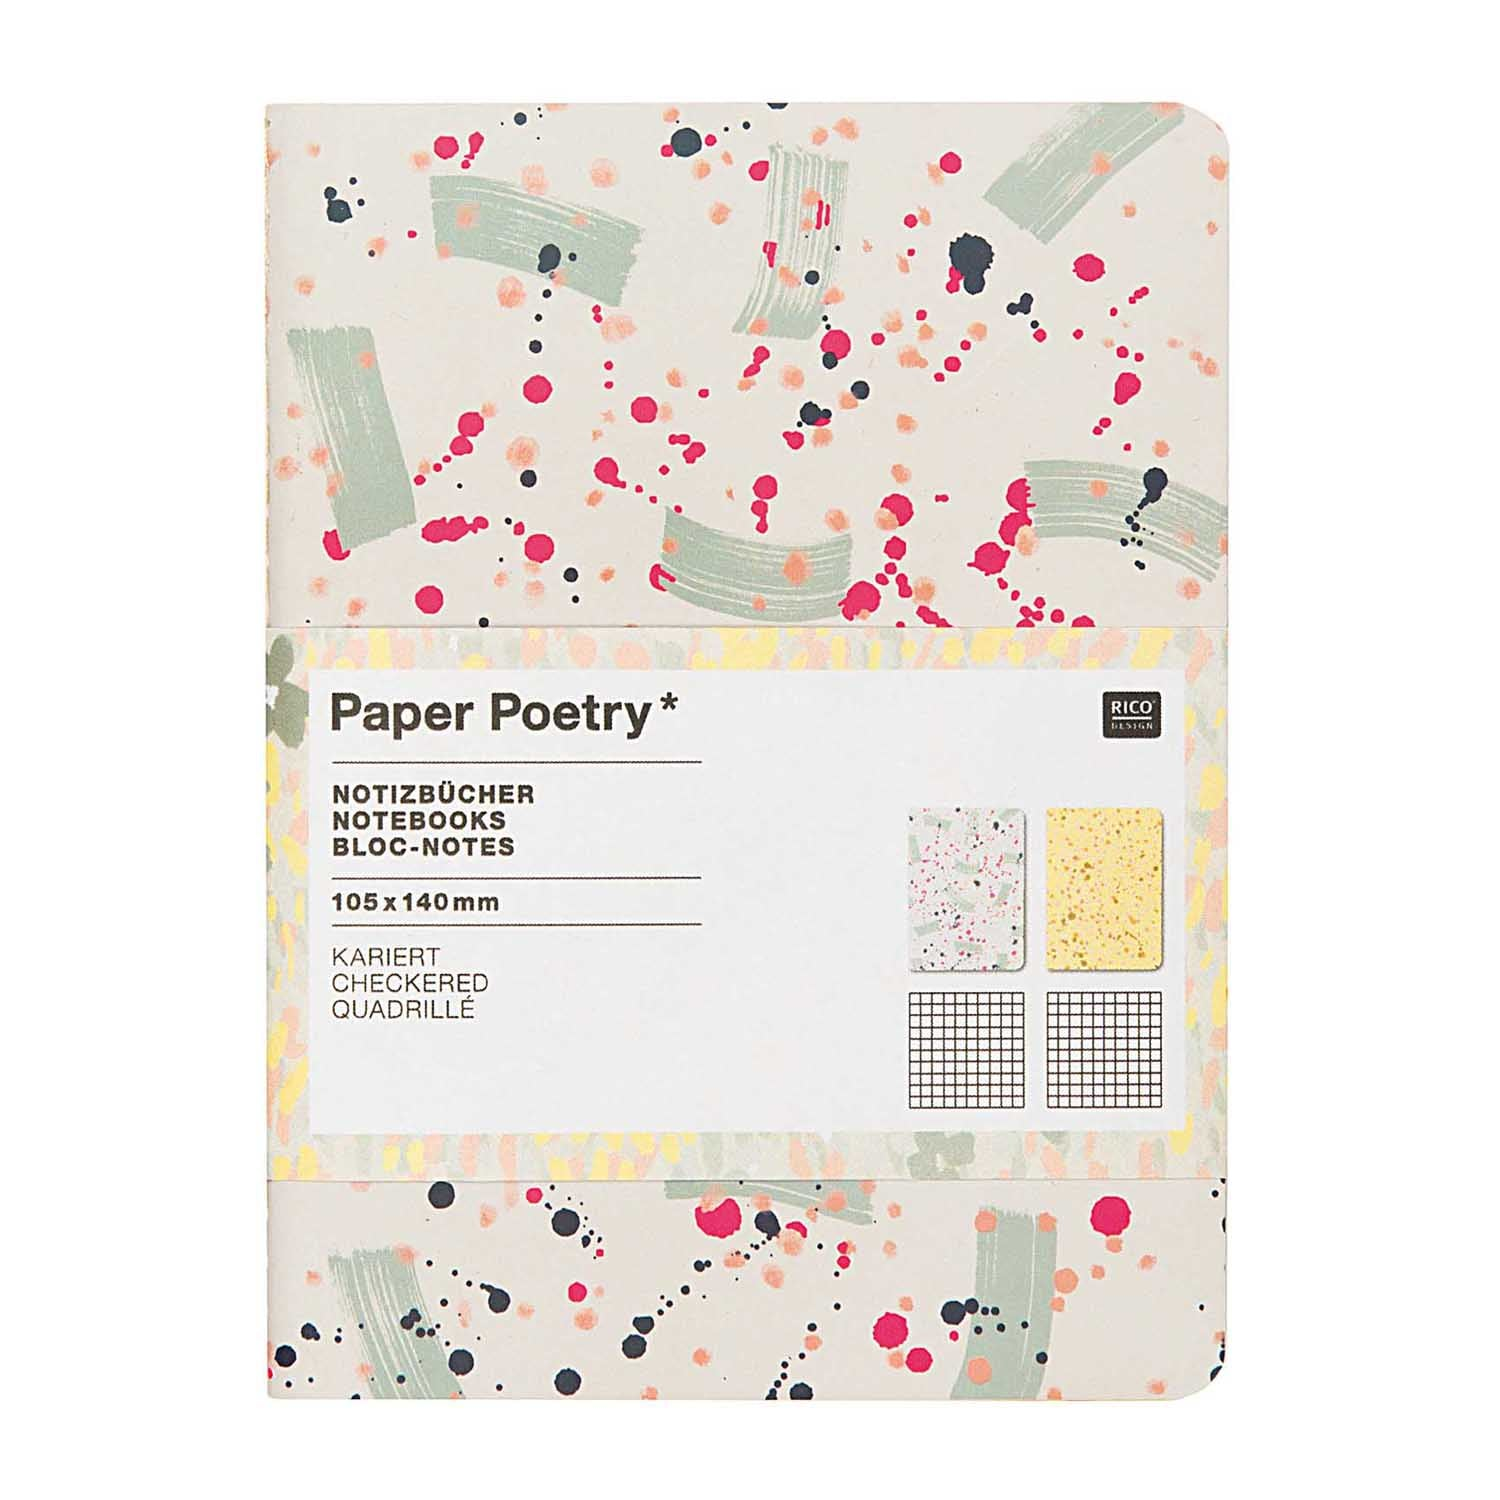 Spot Craft A6 Notebook, Grid Paper Poetry Hong Kong Stationery Design Designer Colourful Hardcover Paint Crafted Nature